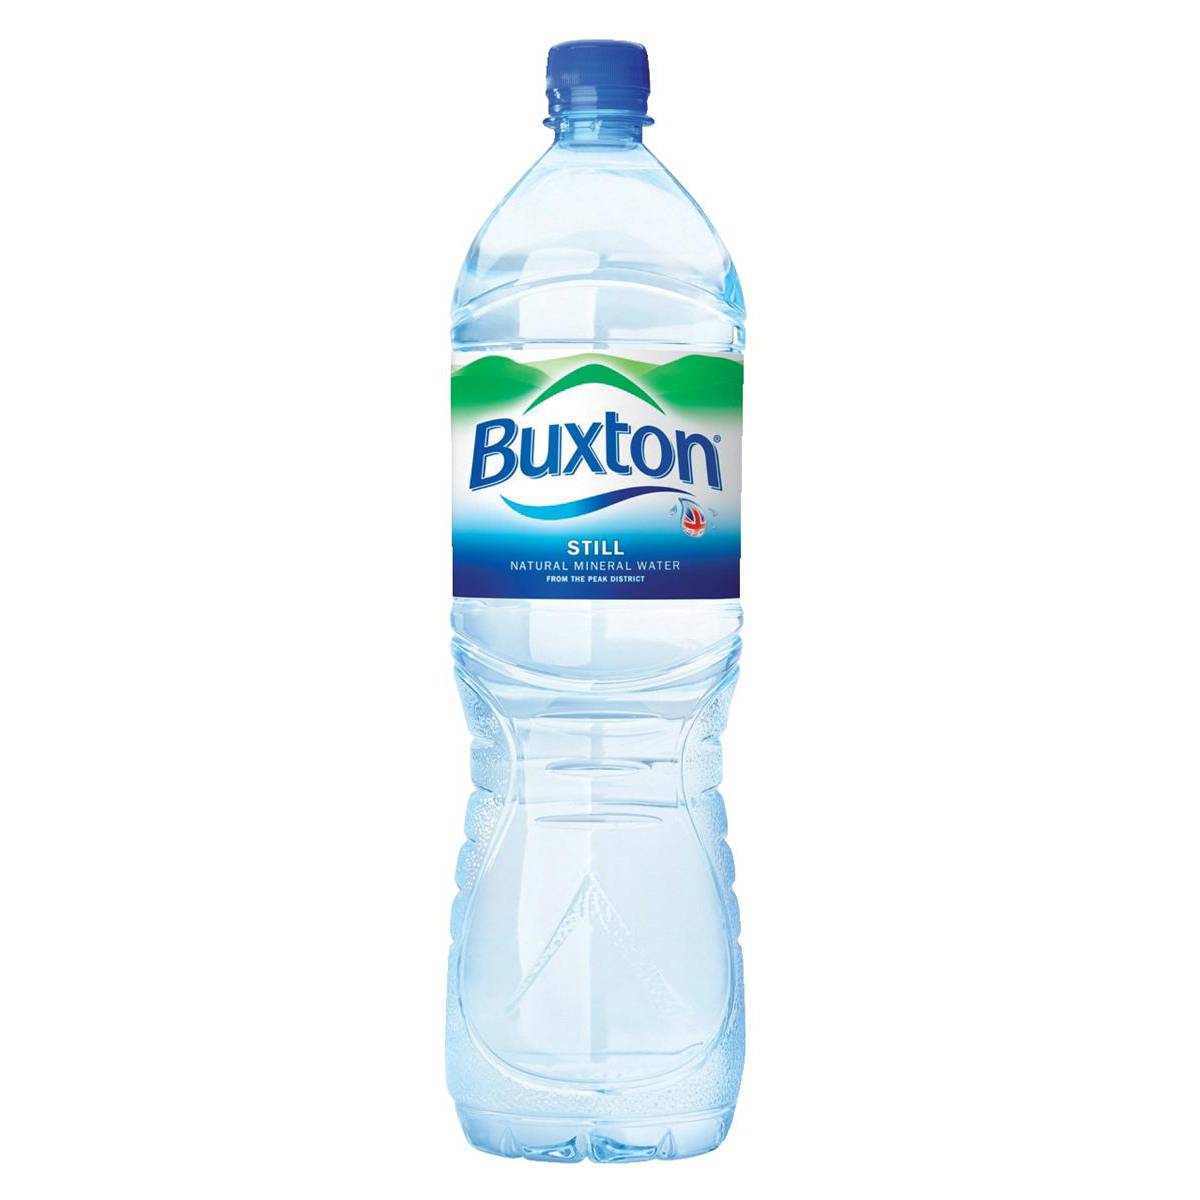 Buxton Natural Mineral Water Still Bottle Plastic 1.5 Litre Ref 742900 Pack 6